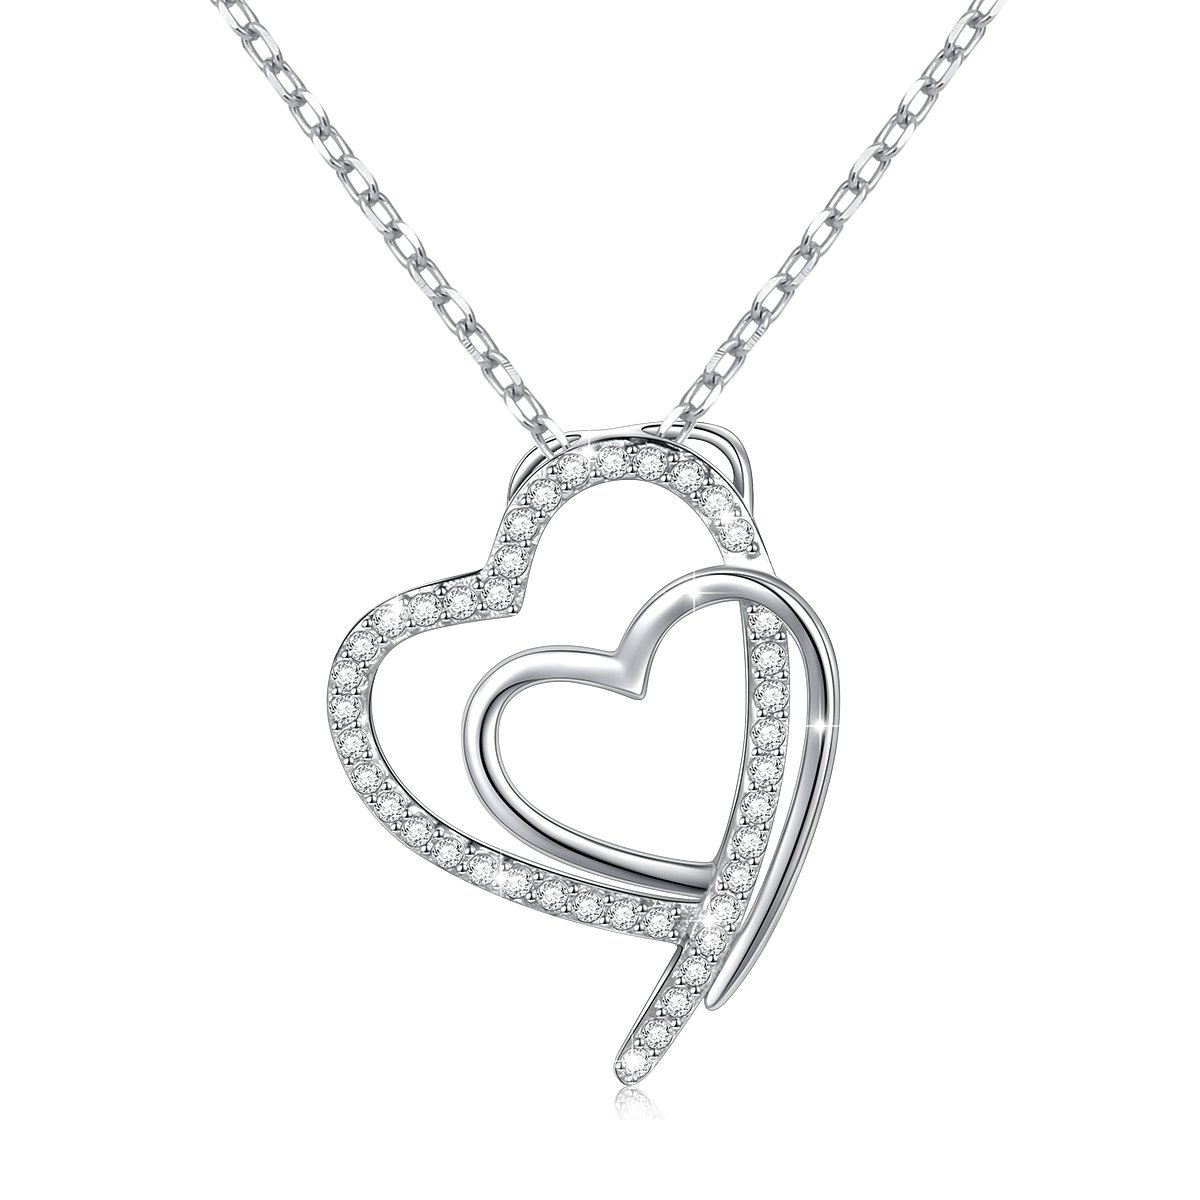 925 Sterling Silver White Cubic Zirconia Infinity Love Heart Necklace Gift for Women Girls,18 inch